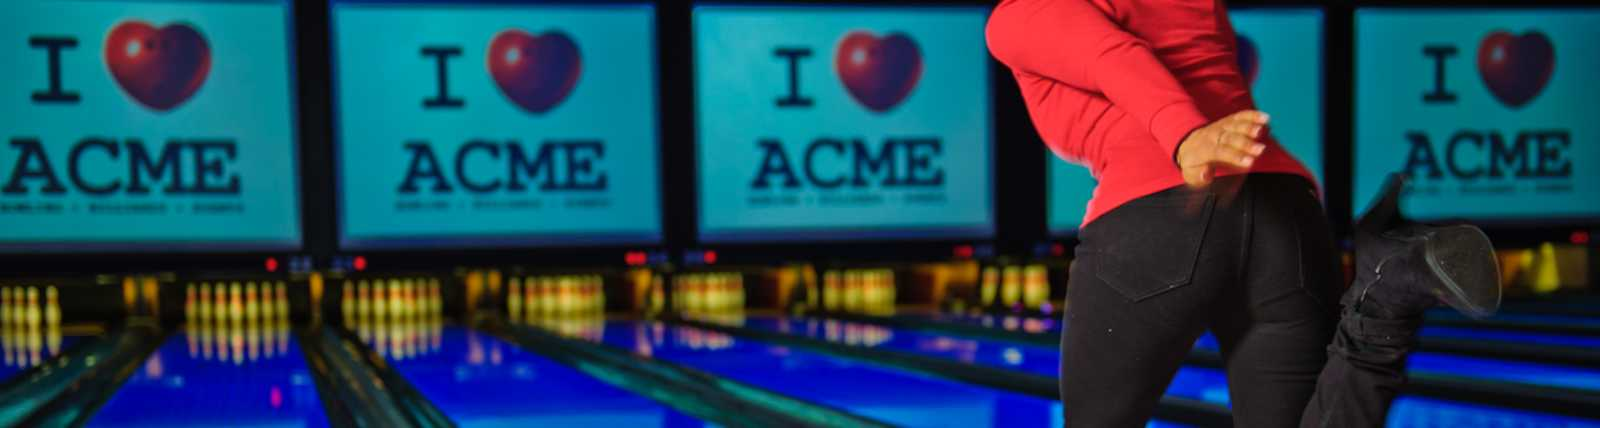 meeting-facility-ACME_Bowling__Billiards_and_Events_Meeting_Facility-10.jpg